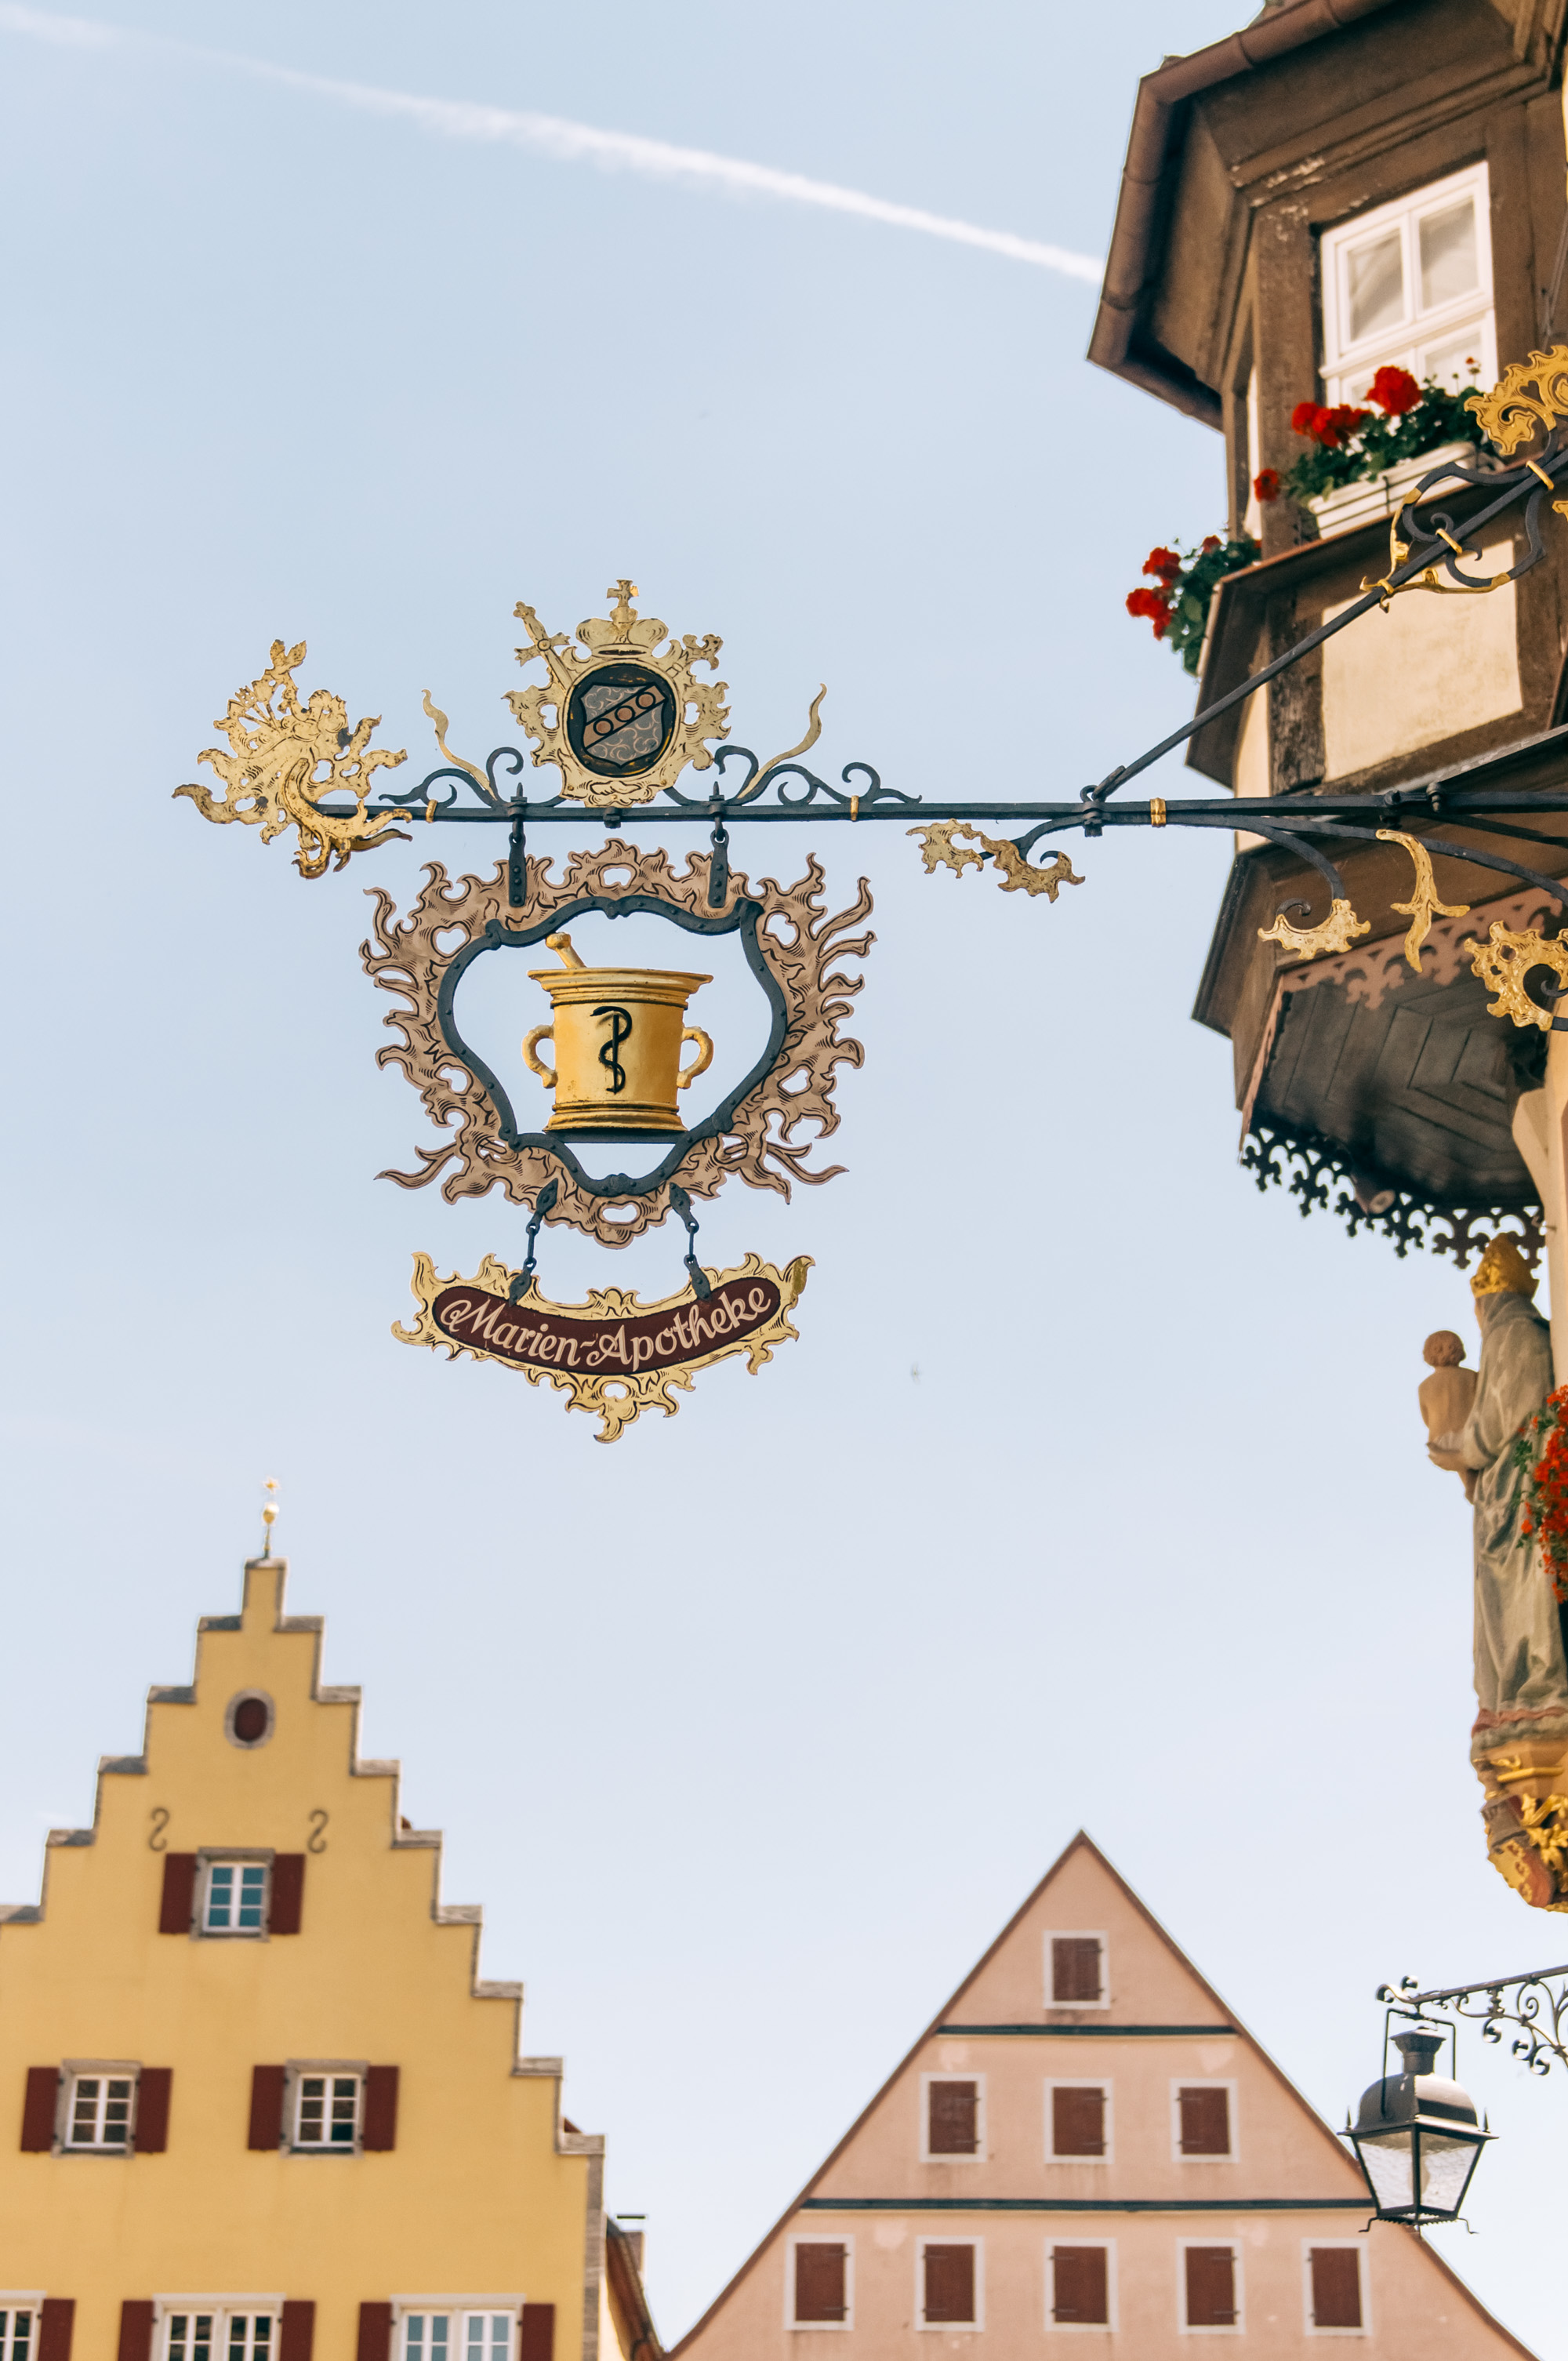 rothenburg-xavier-manhing-42.jpg